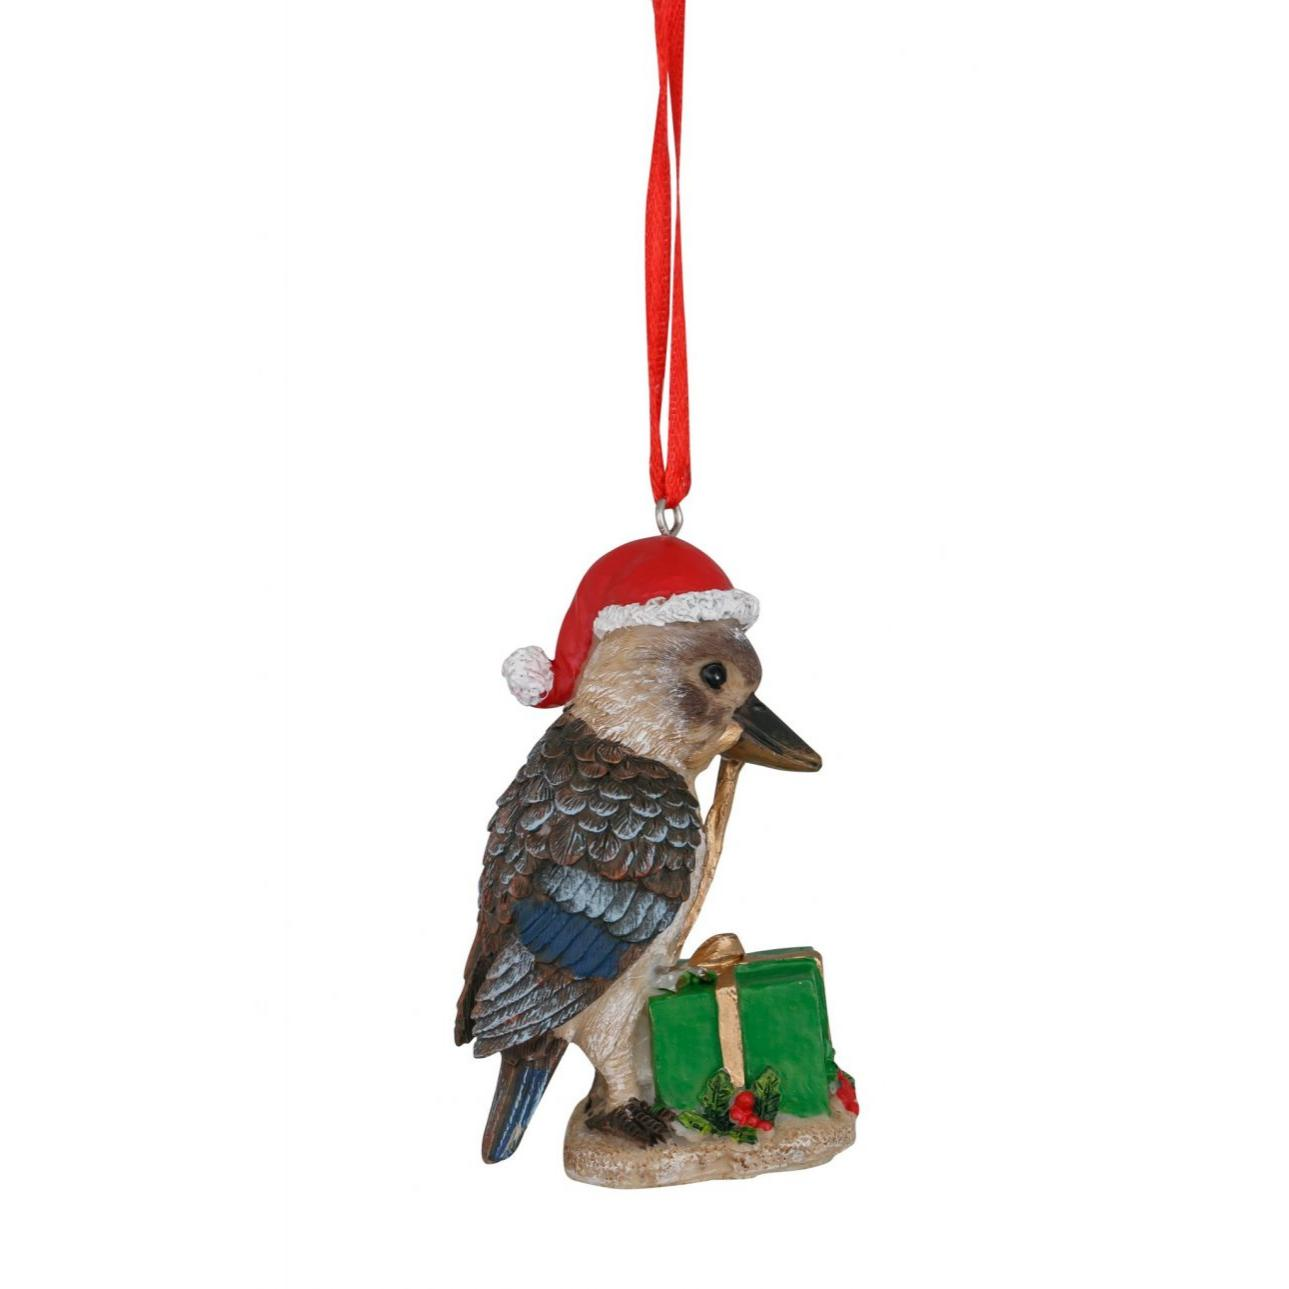 Kookaburra Hanging Decoration Green Box 8cm